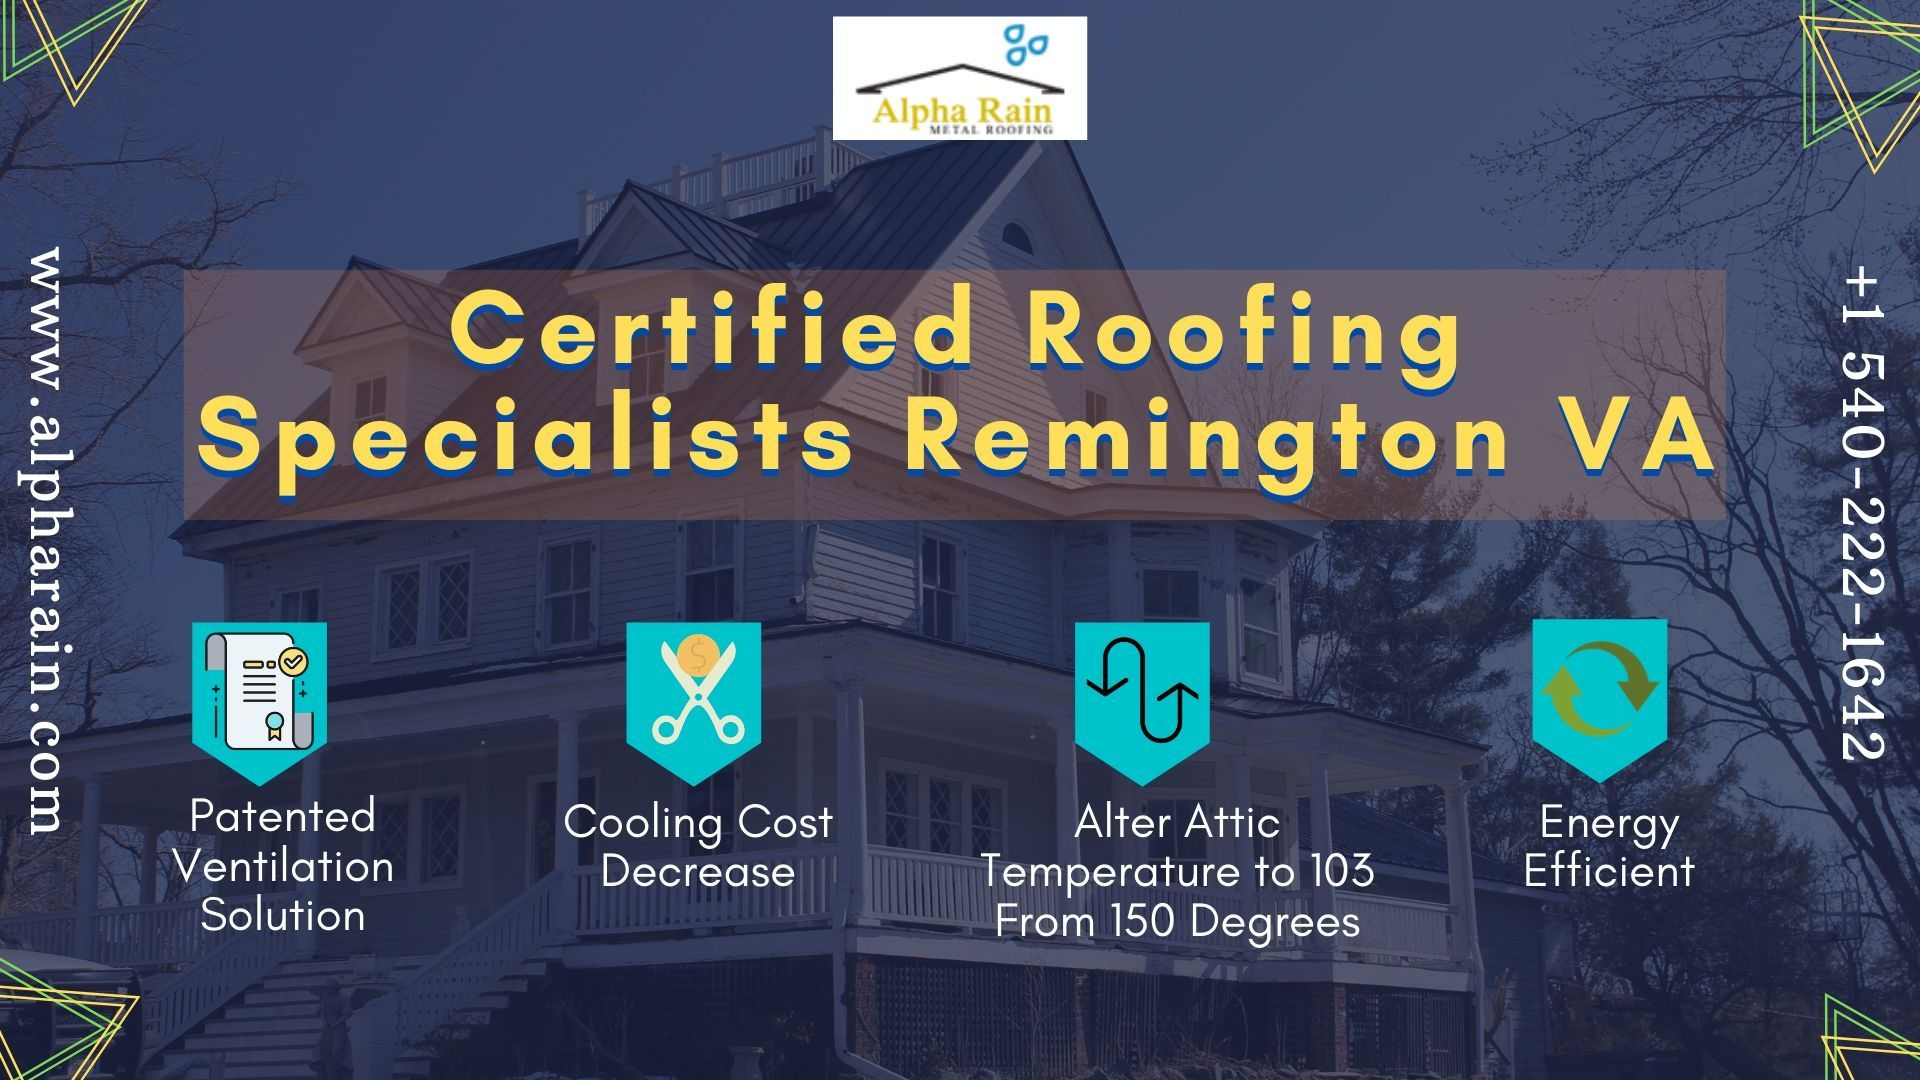 Worried For New Metal Roof Installation Alpha Rain Installs Energy Efficient Roofs At An A In 2020 Roof Installation Metal Roof Installation Metal Roofing Contractors